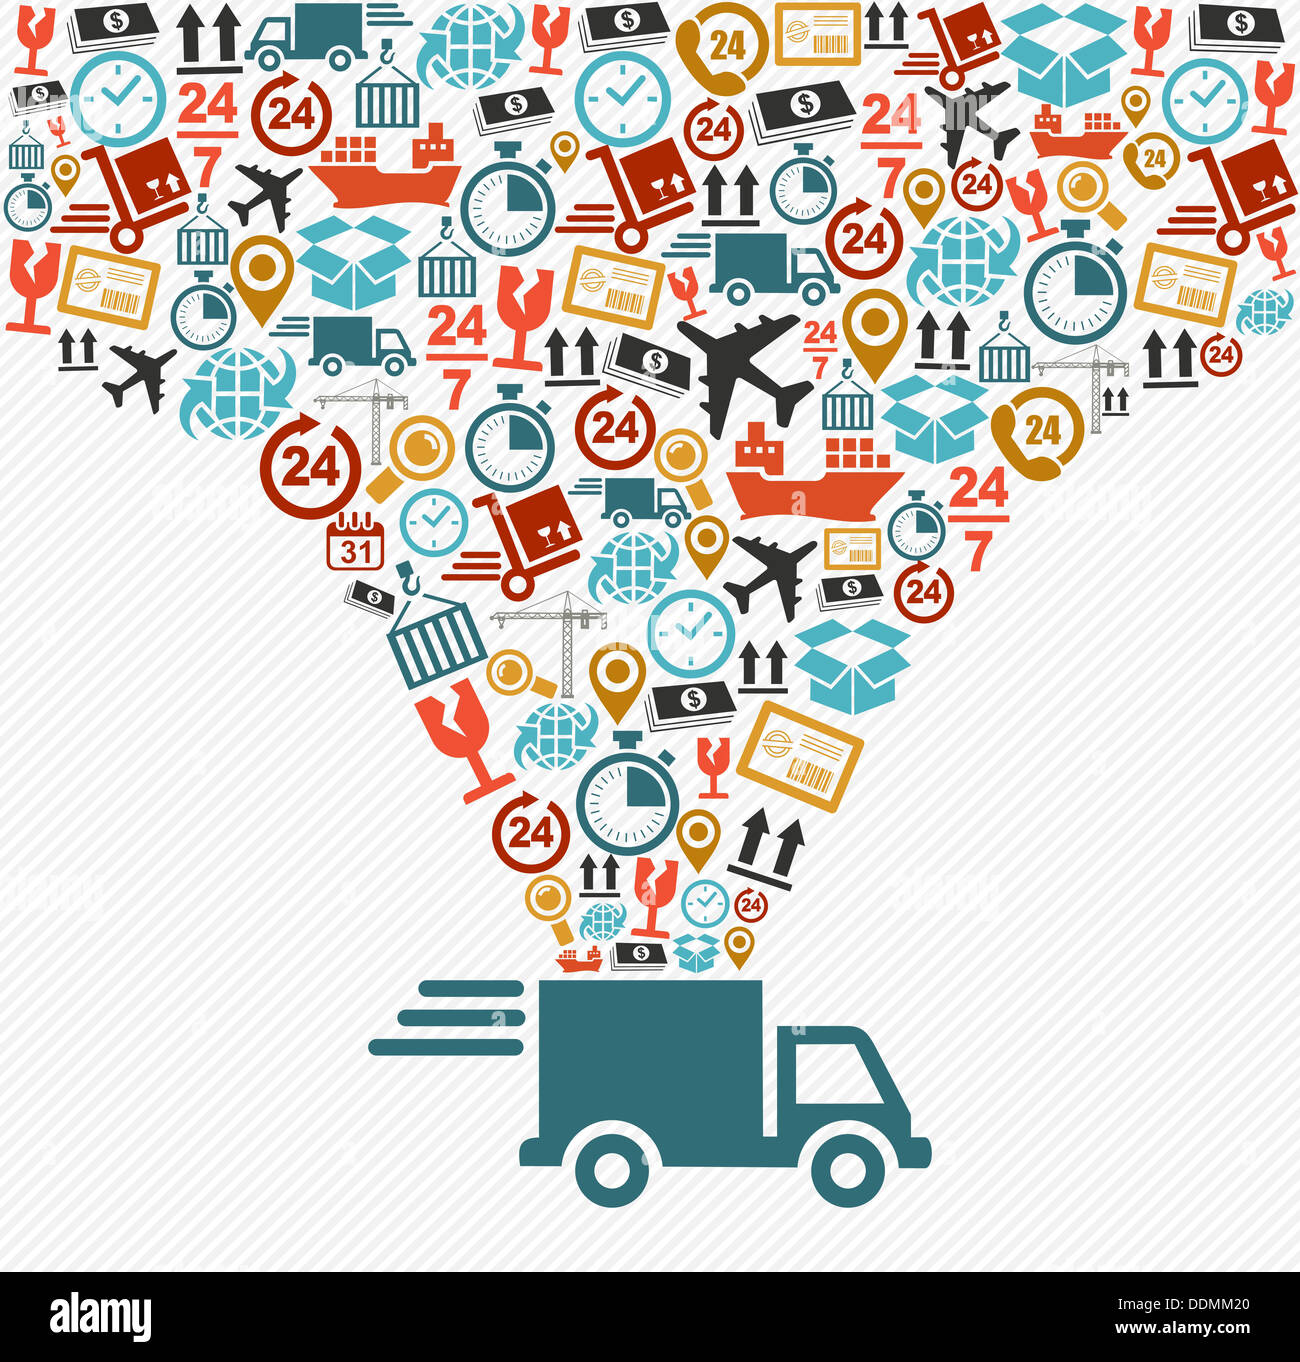 Shipping Delivery: Concept Digital Mobile Logistics Shipping Stock Photos